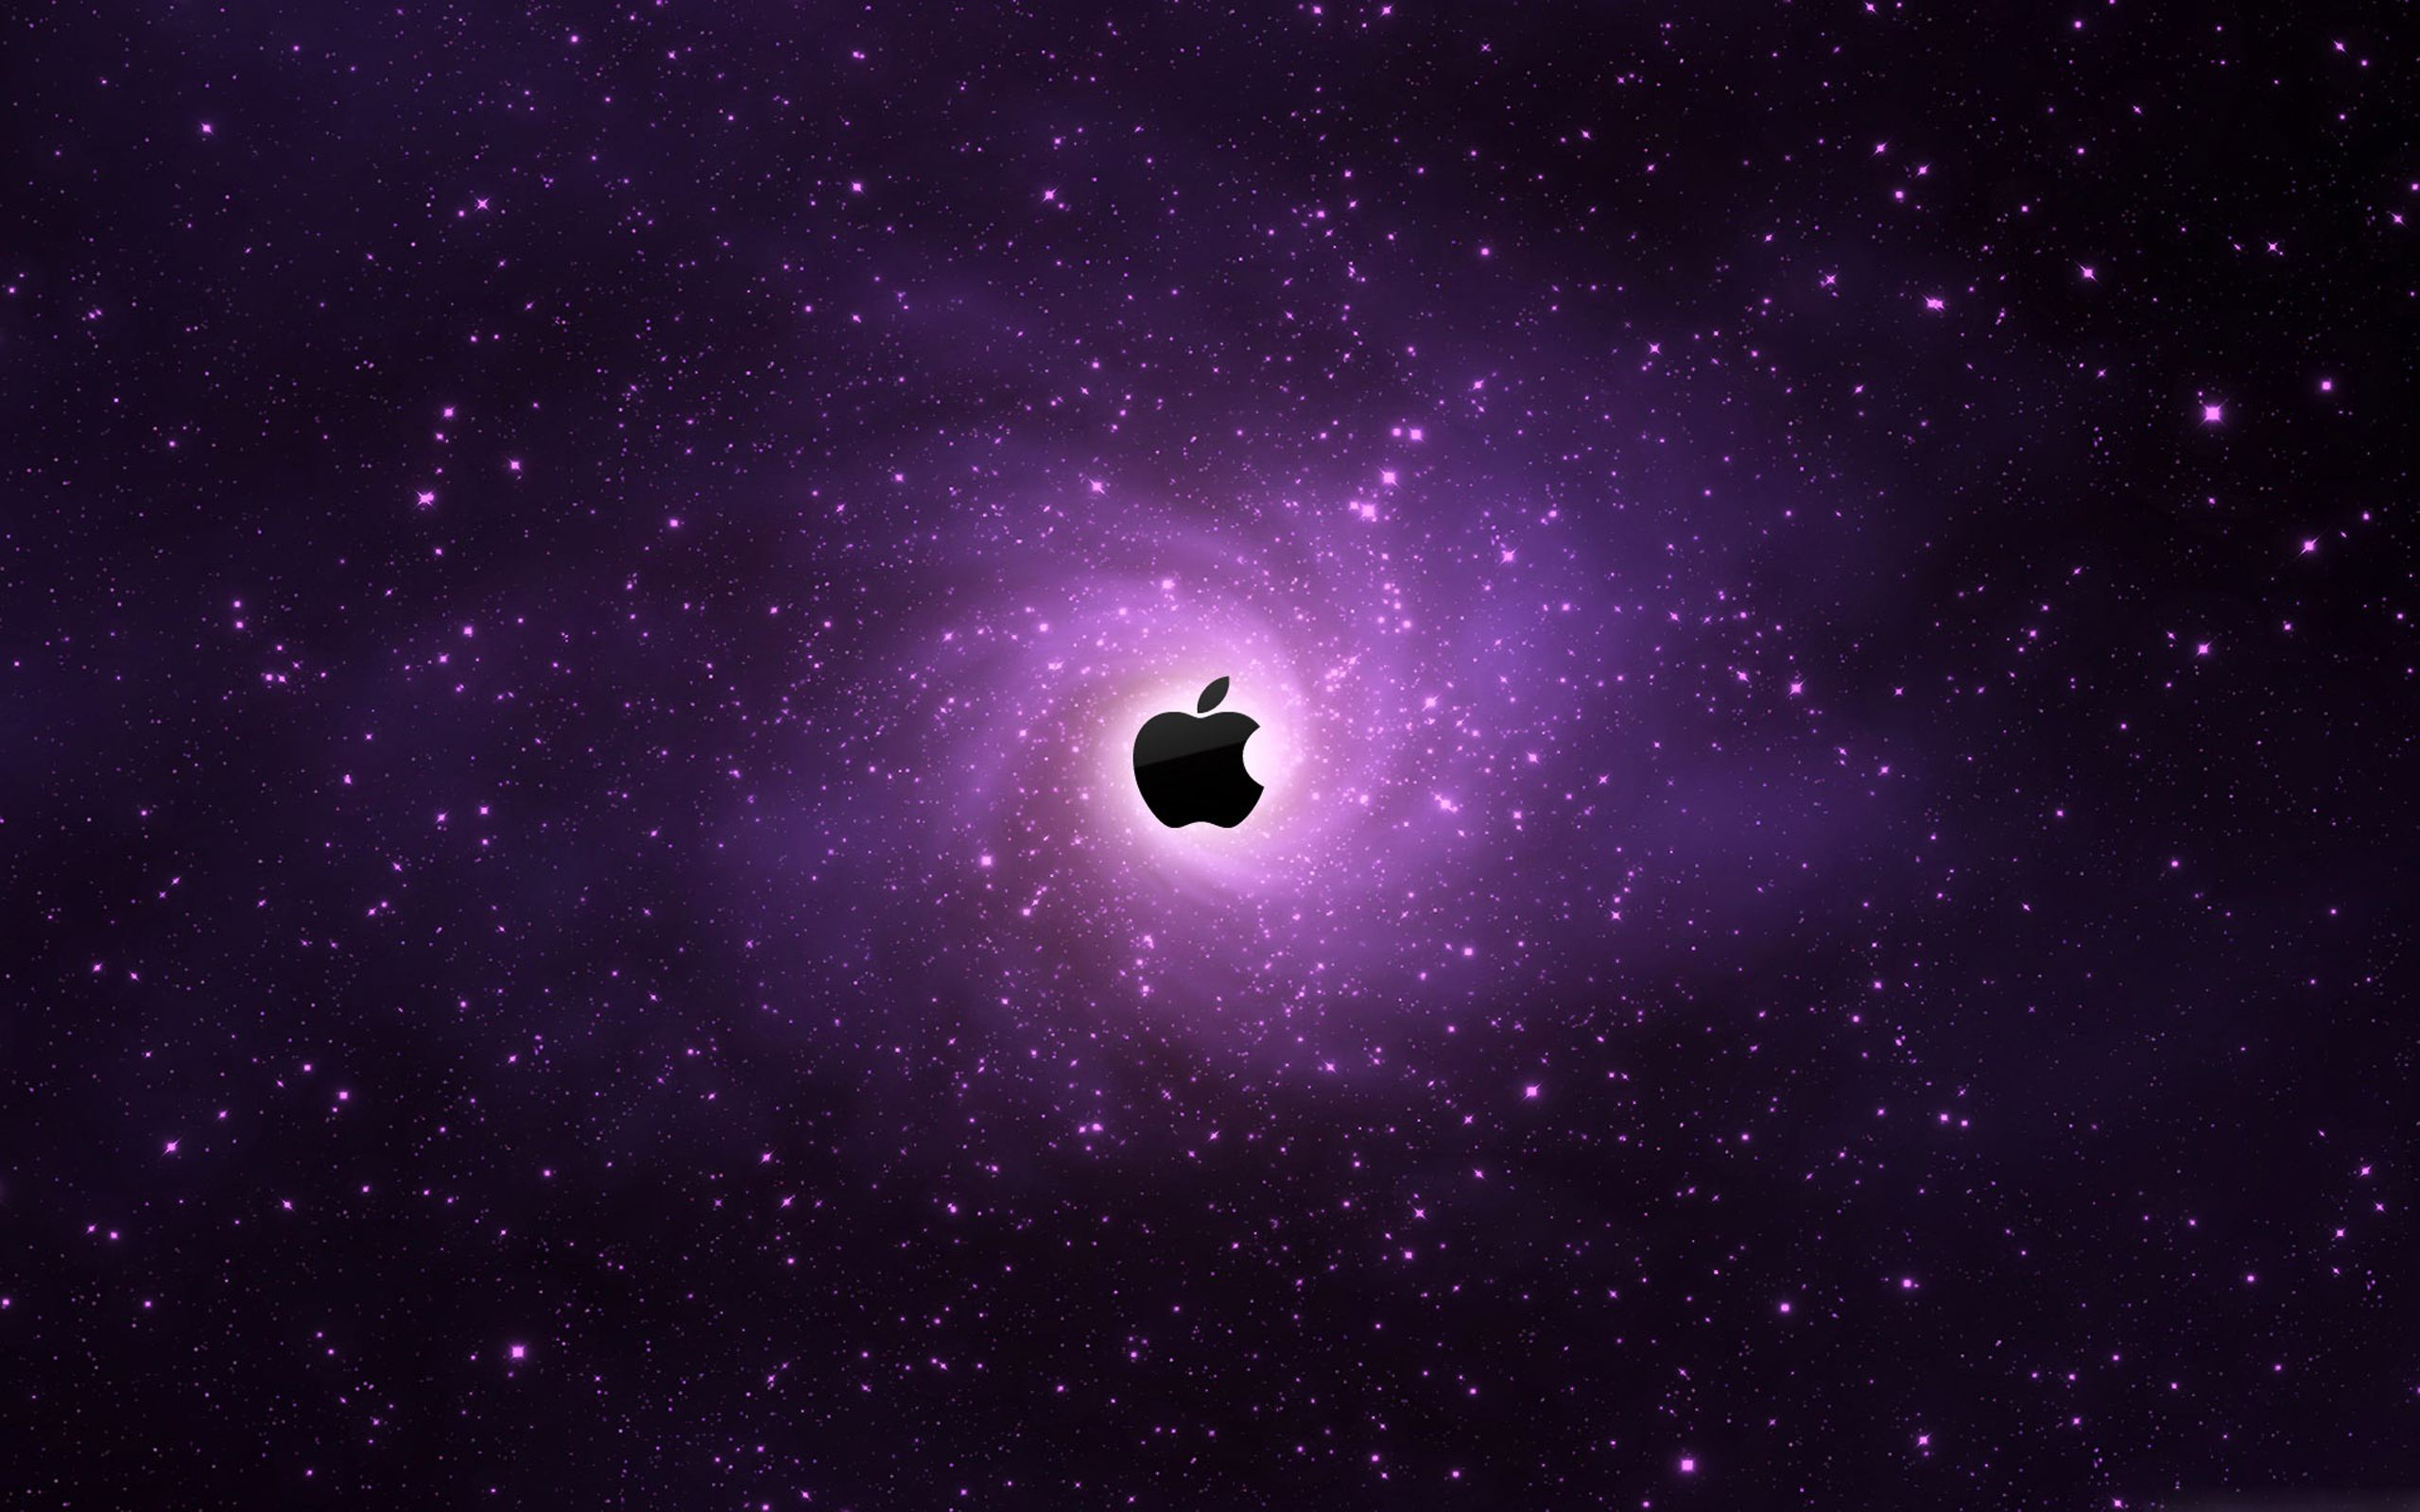 apple galaxy wallpapers | apple galaxy stock photos